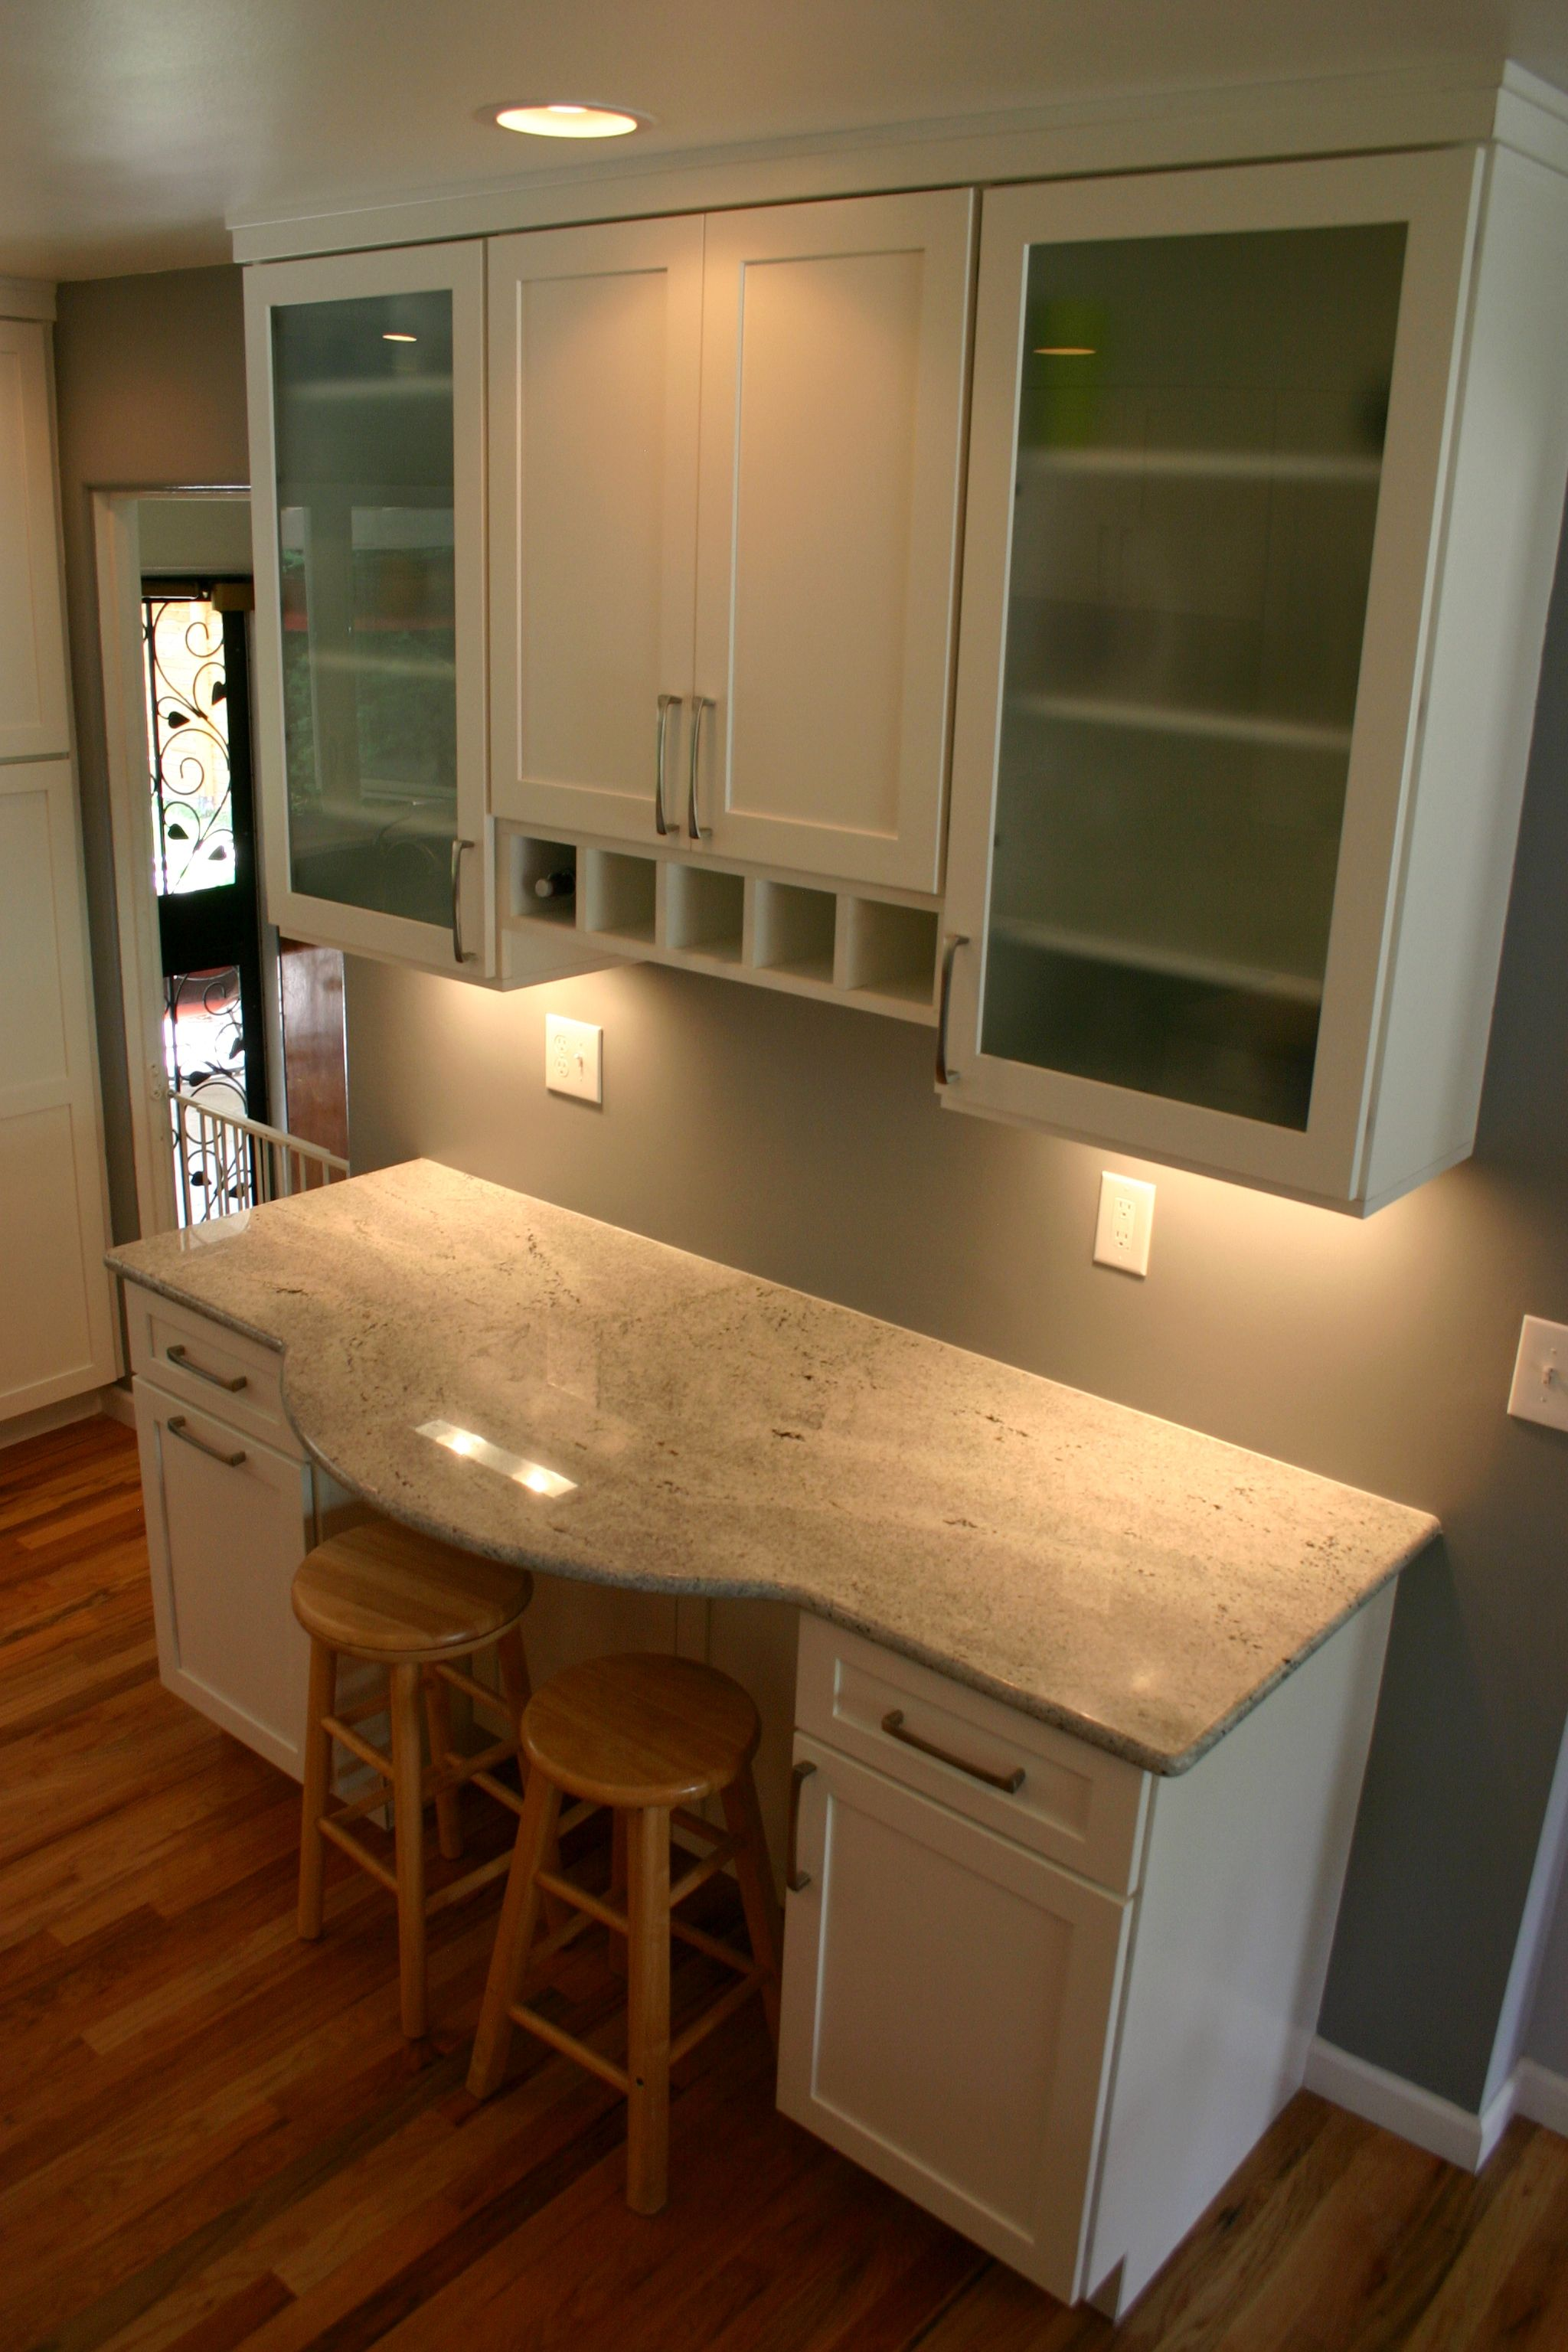 BKC Kitchen and Bath kitchen remodel: Medallion Cabinetry, Potters ...